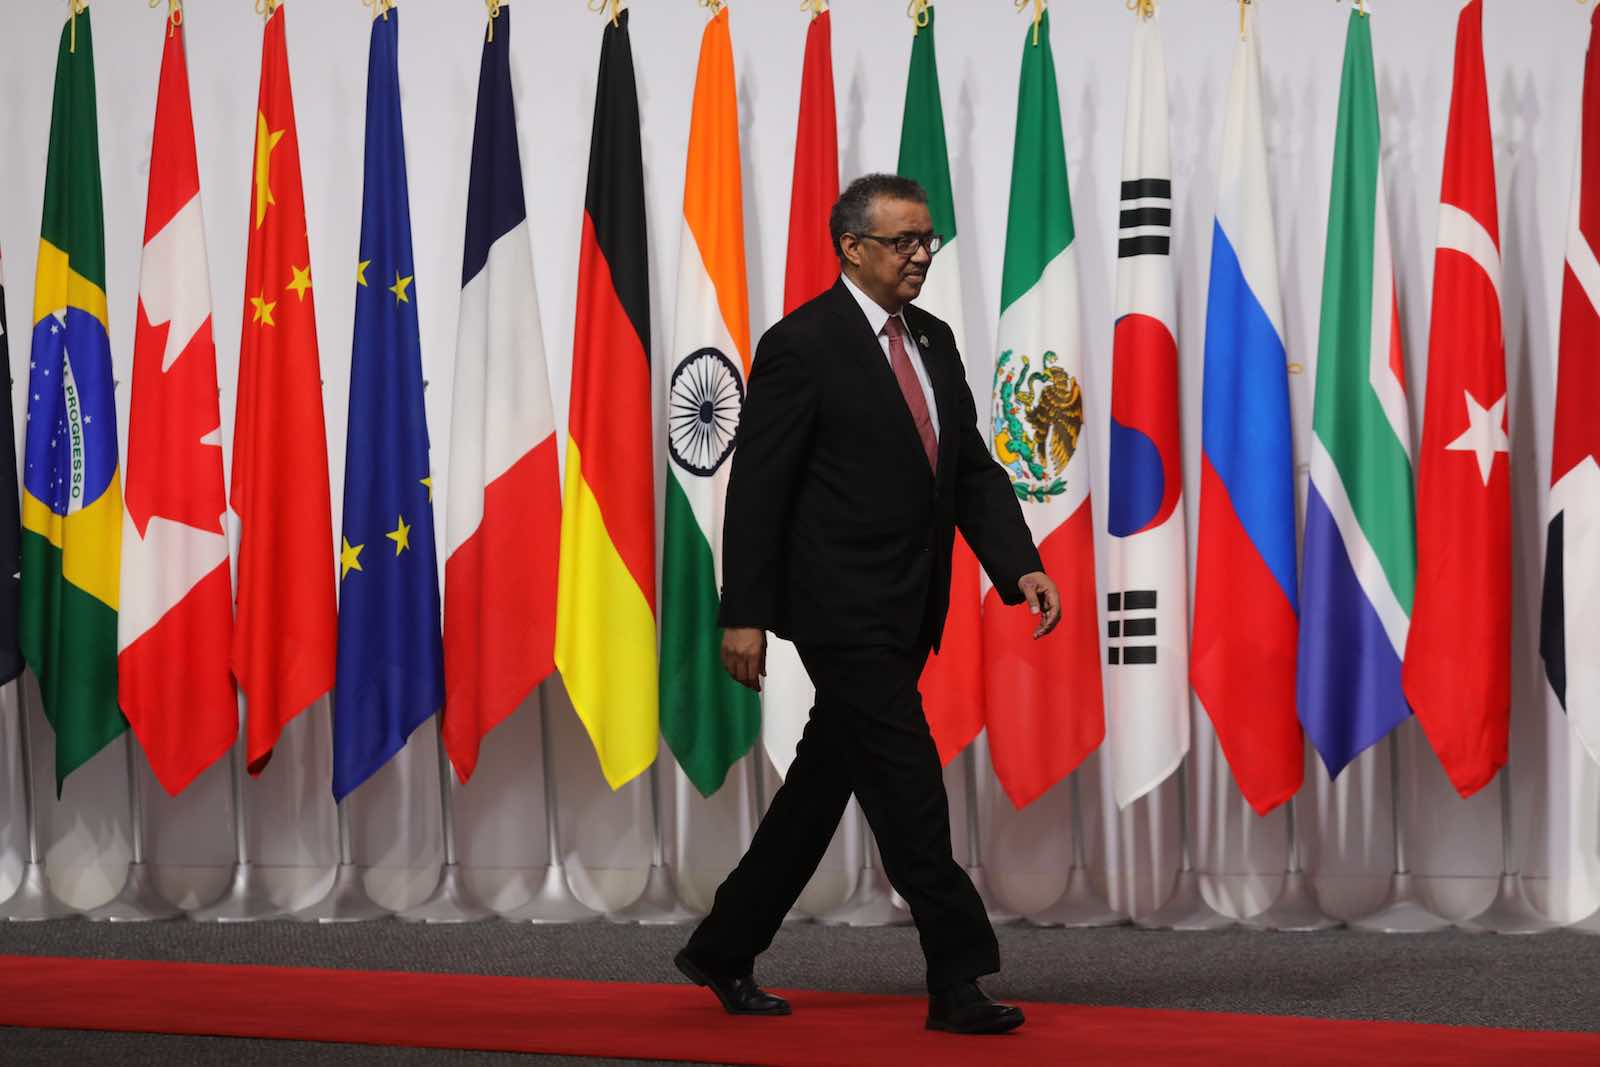 World Health Organization Director-General Tedros Adhanom at the G20 Summit in Osaka, Japan, June 2019 (Ludovic Marin/AFP via Getty Images)